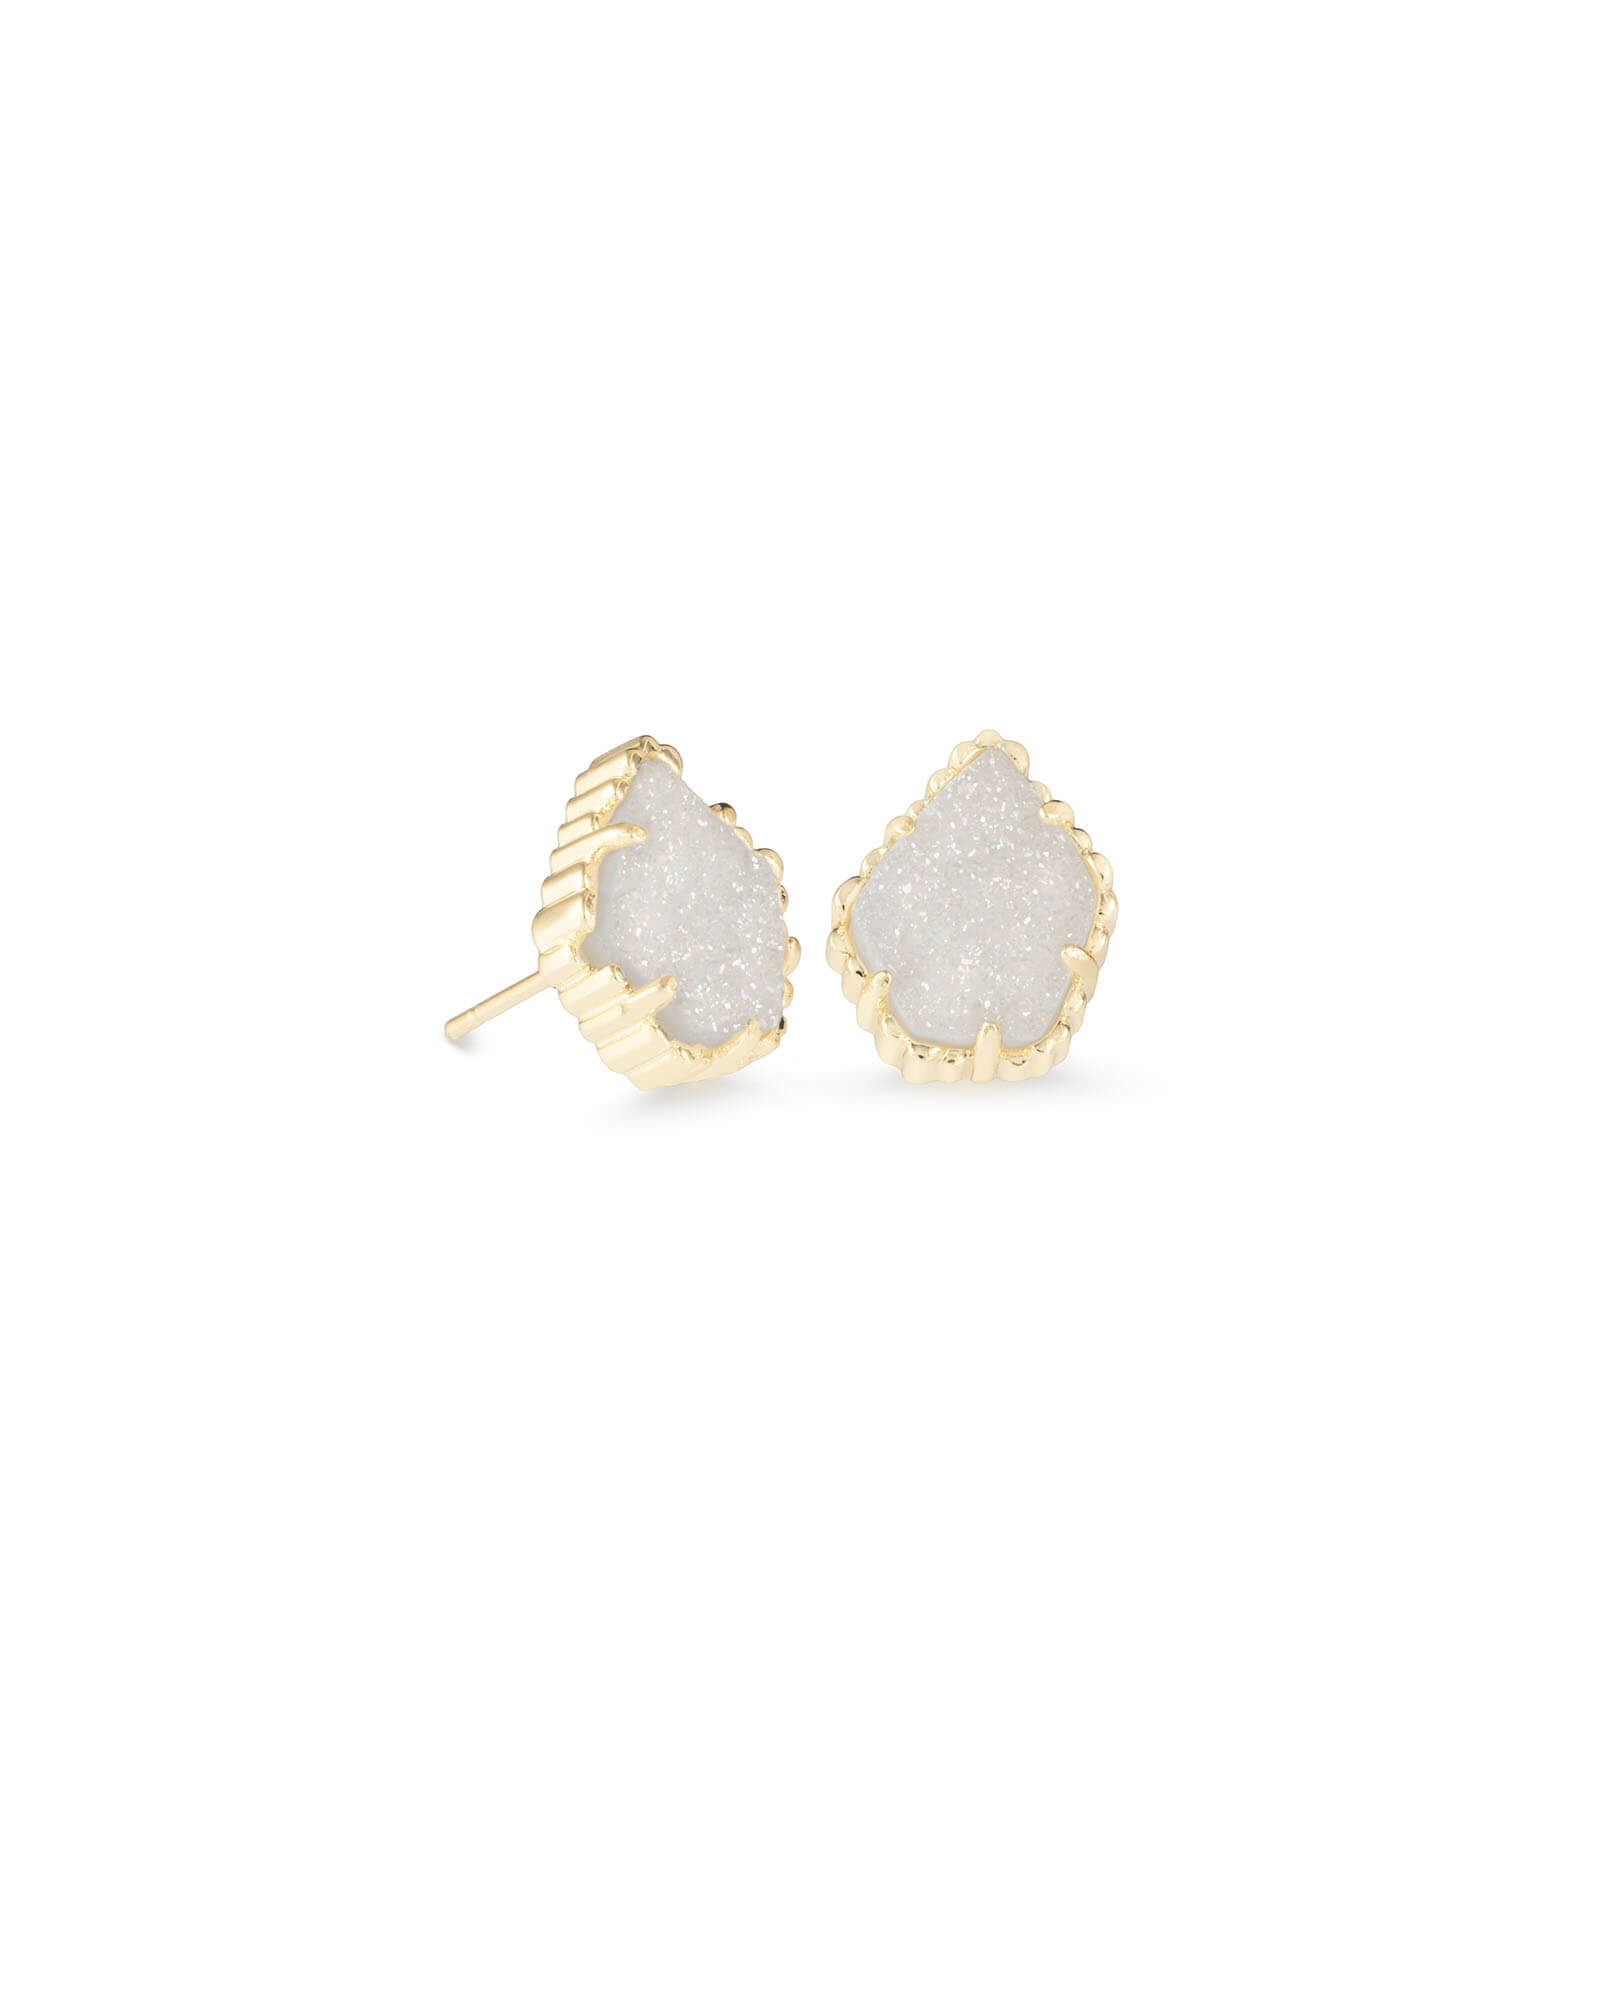 Tessa Gold Stud Earrings in Iridescent Drusy